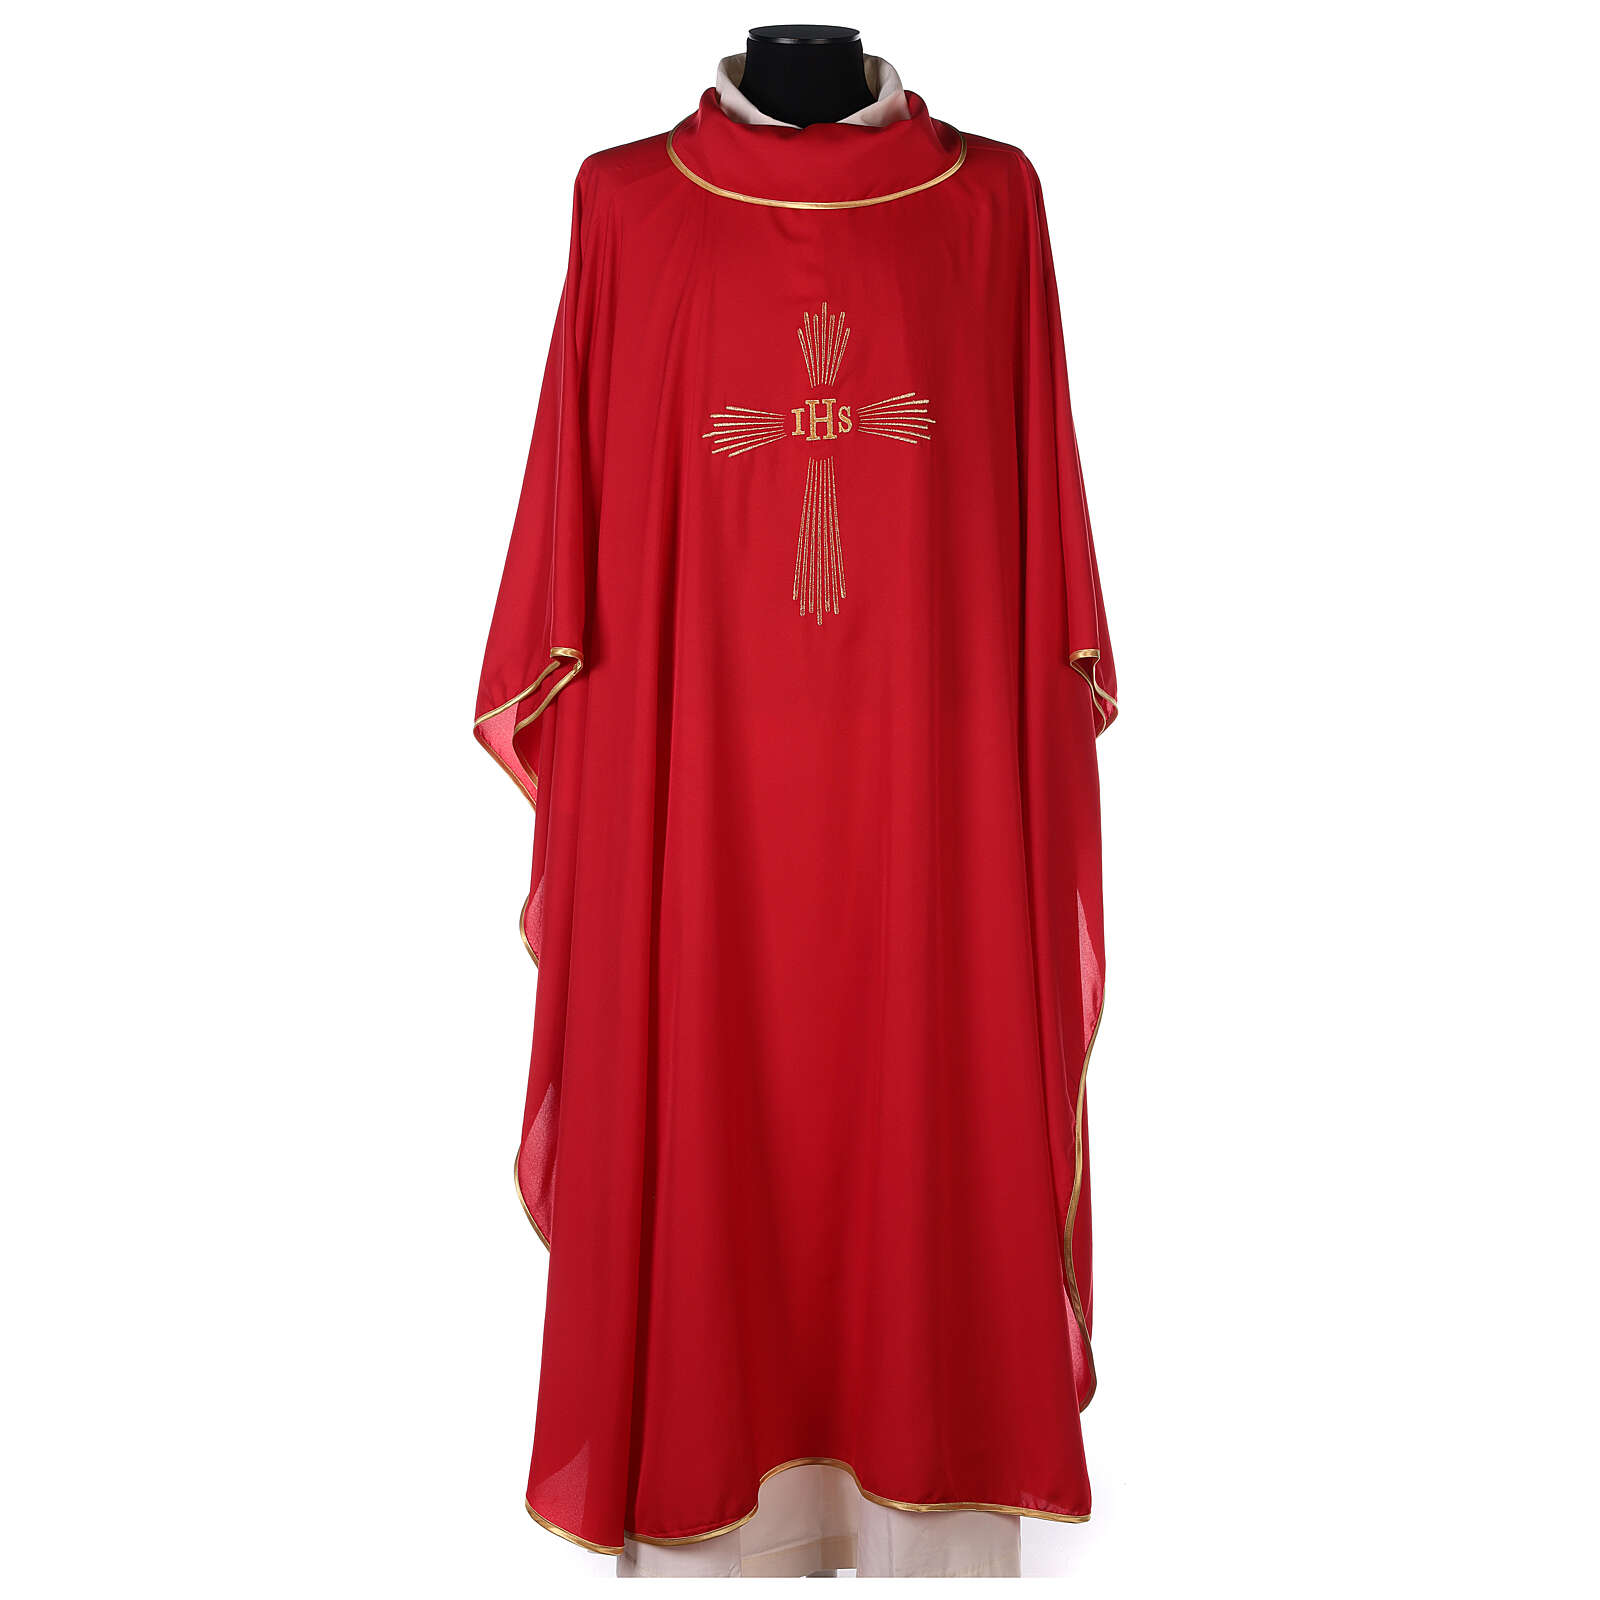 Set of 4 Chasubles 4 colours, IHS cross rays SPECIAL PRICE 4